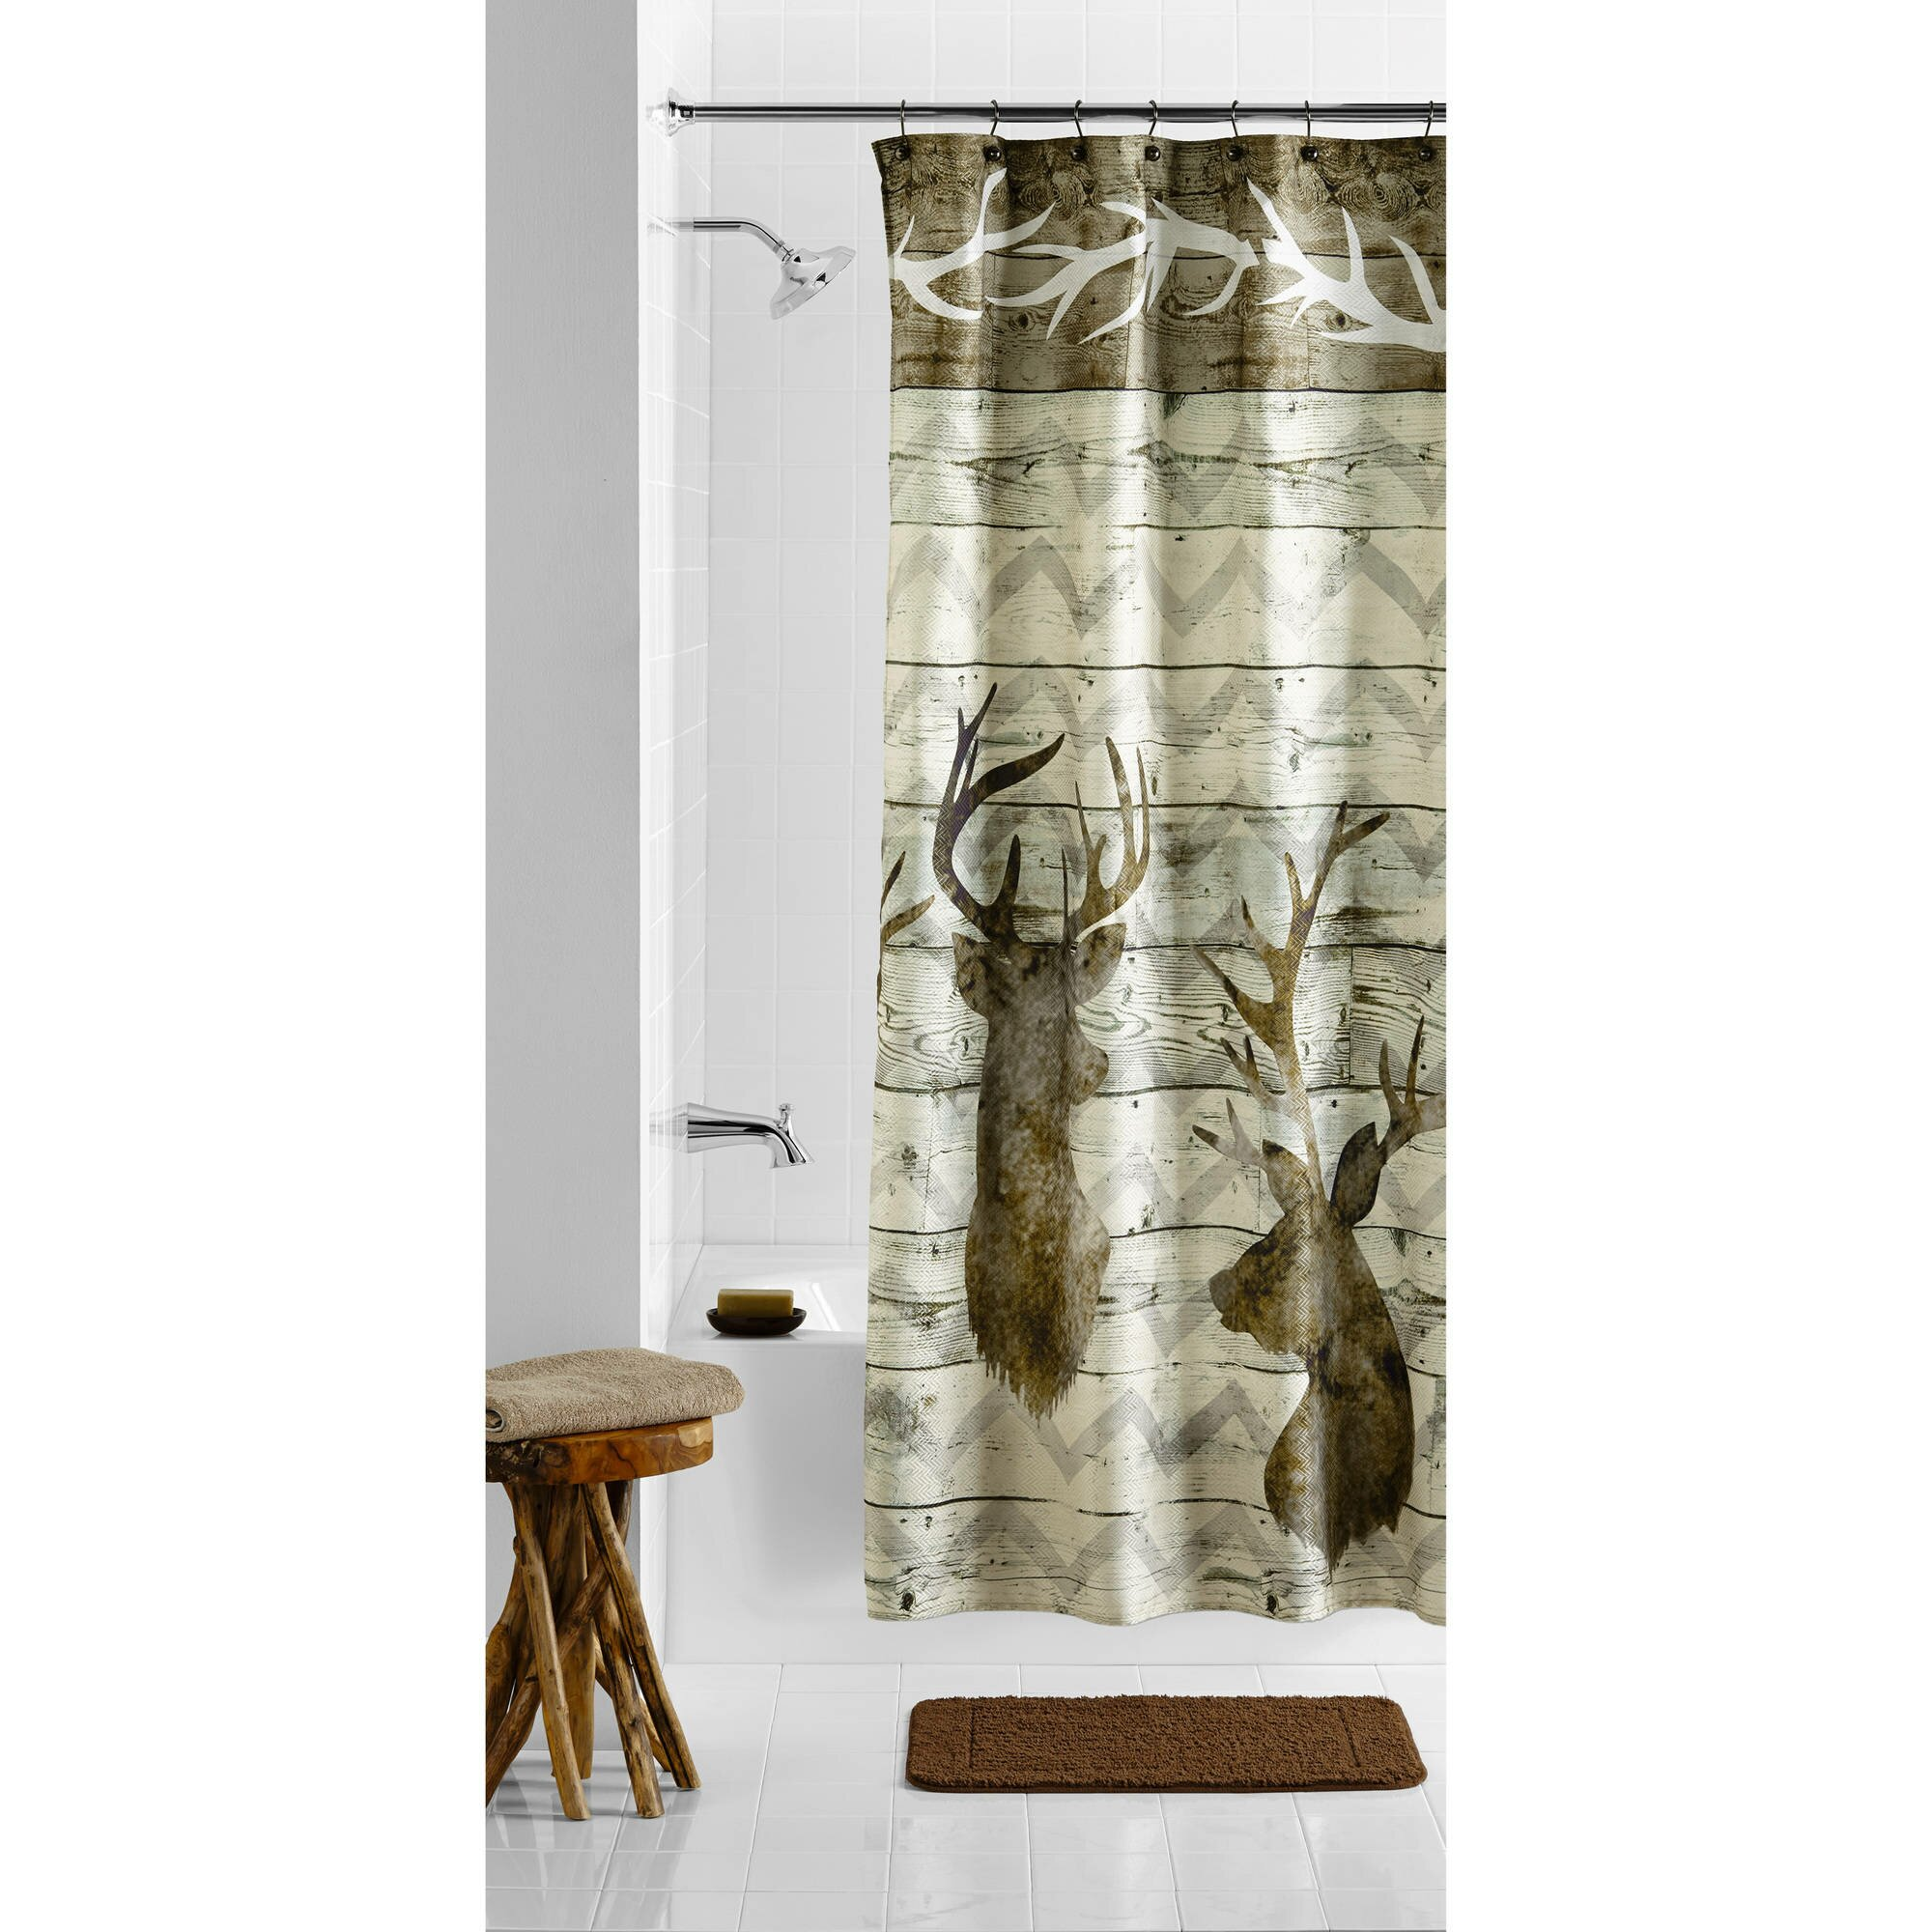 Navy Fabric Shower Curtain | Walmart Tree Shower Curtain | Walmart Shower Curtain